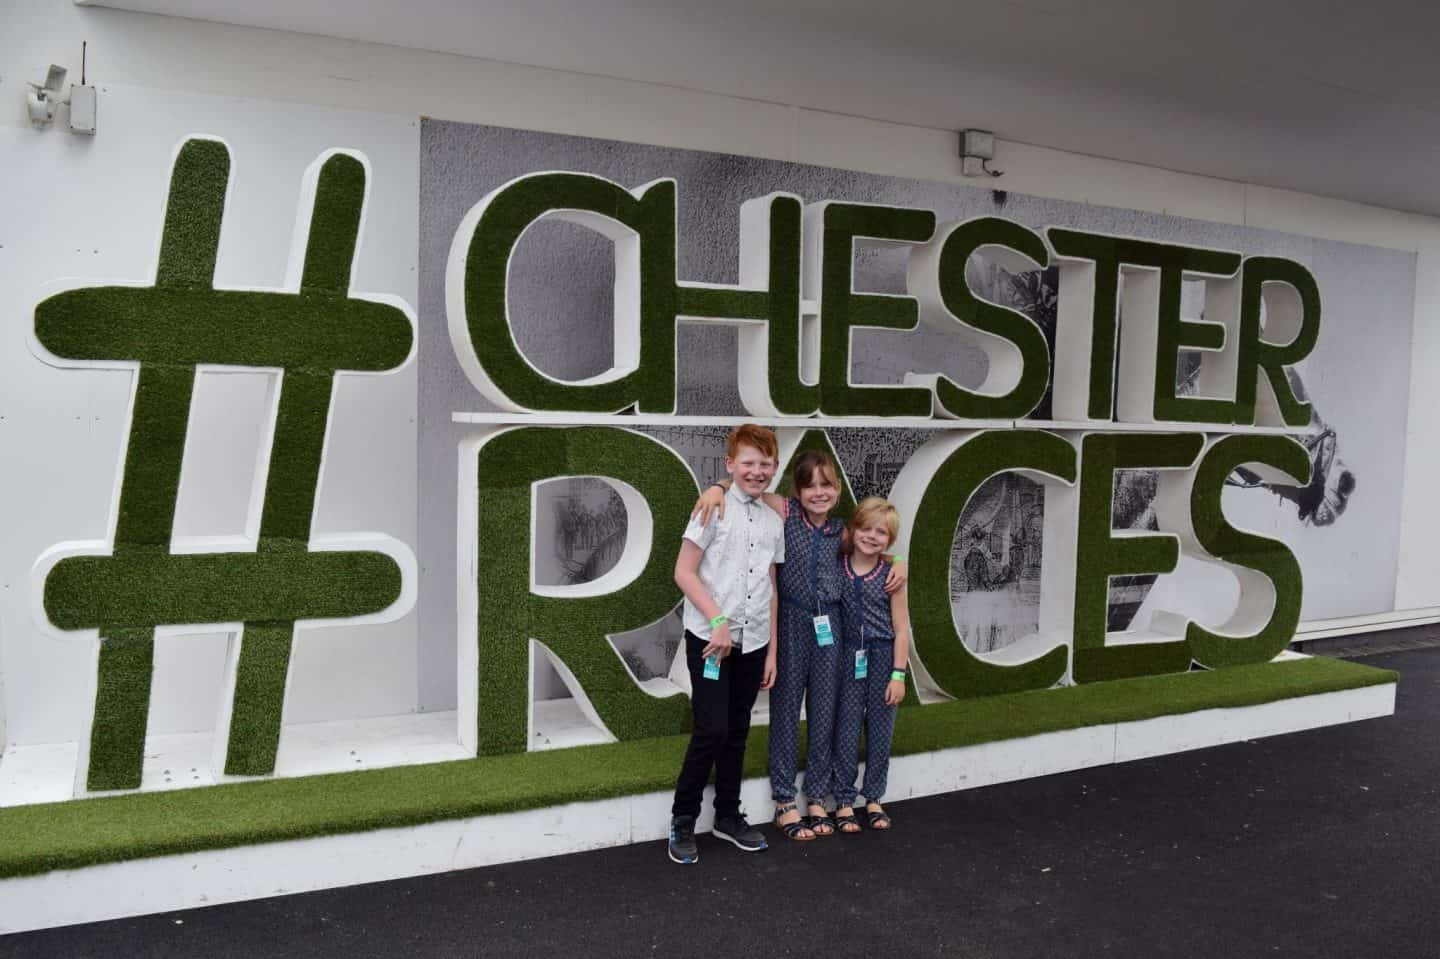 #ChesterRaces sign at Chester Racecourse